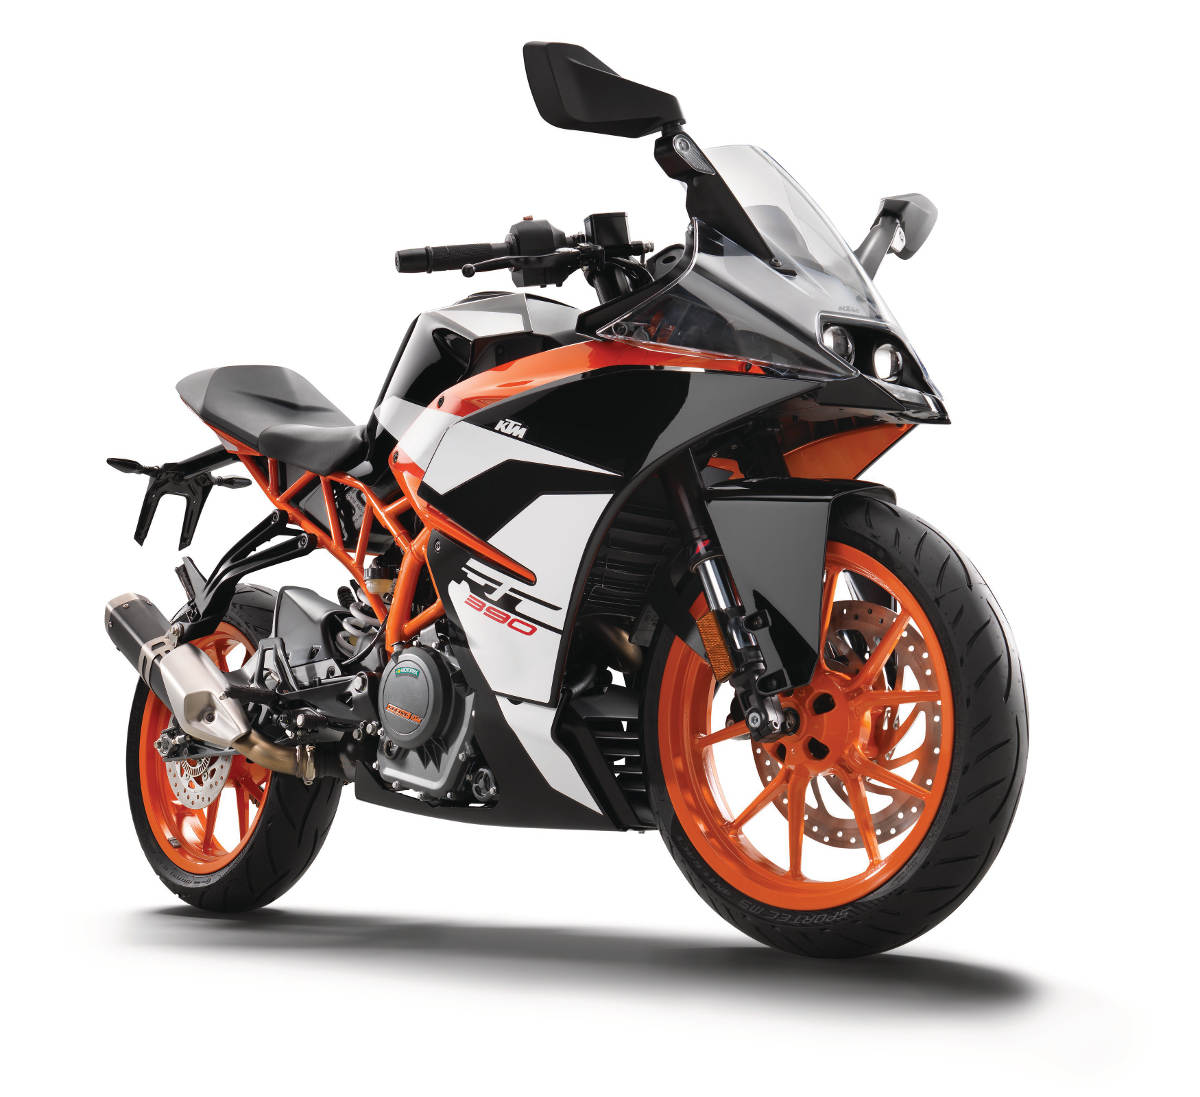 2017 KTM RC 390 Front Right